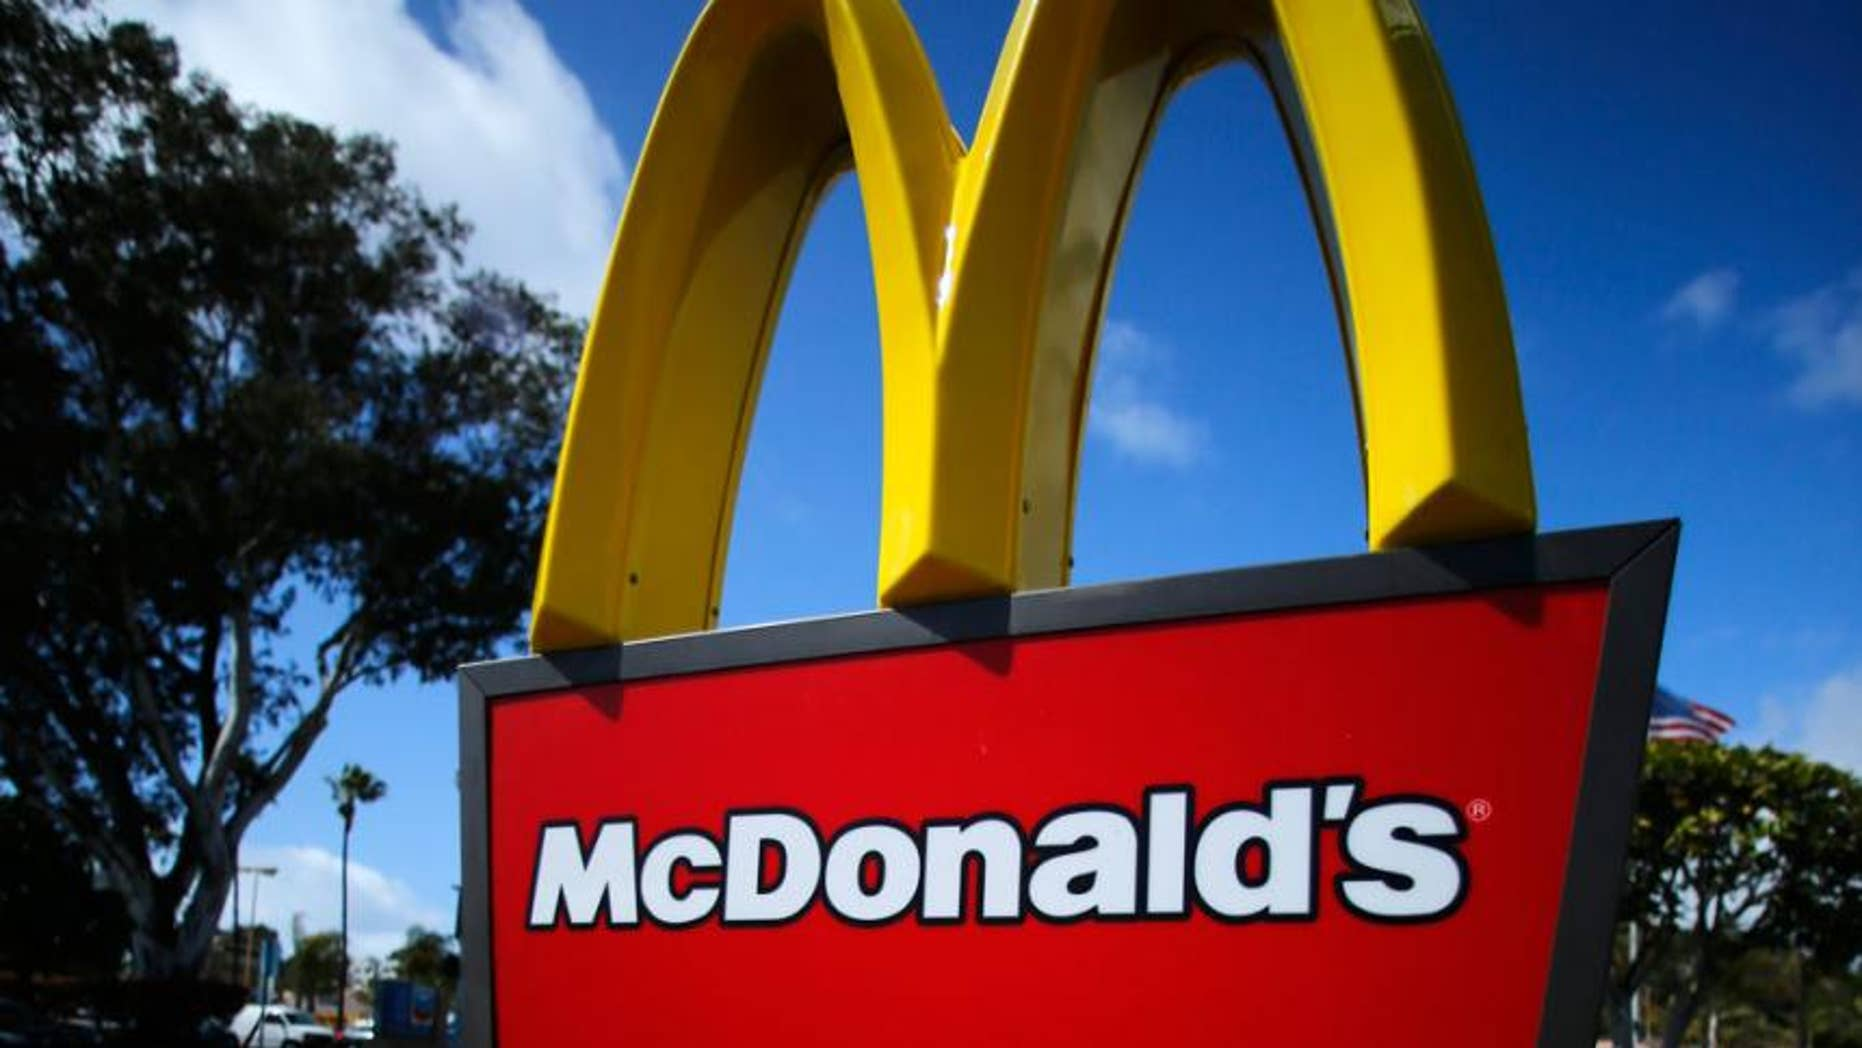 A Washington McDonald's has temporarily closed due to a rat infestation issue.